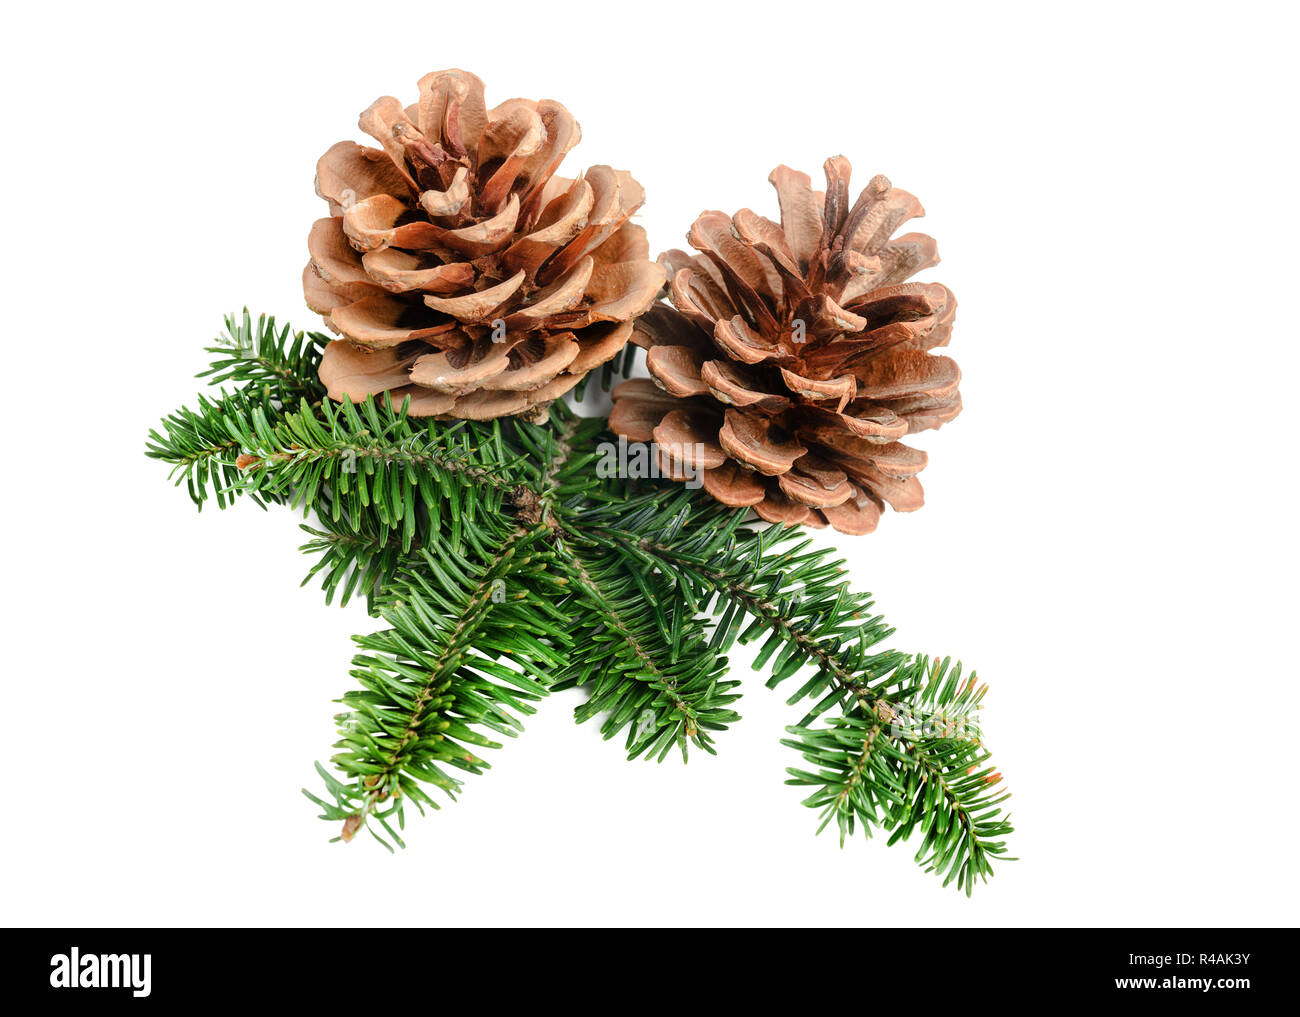 Pine tree branch with cone Christmas decoration element - Stock Image